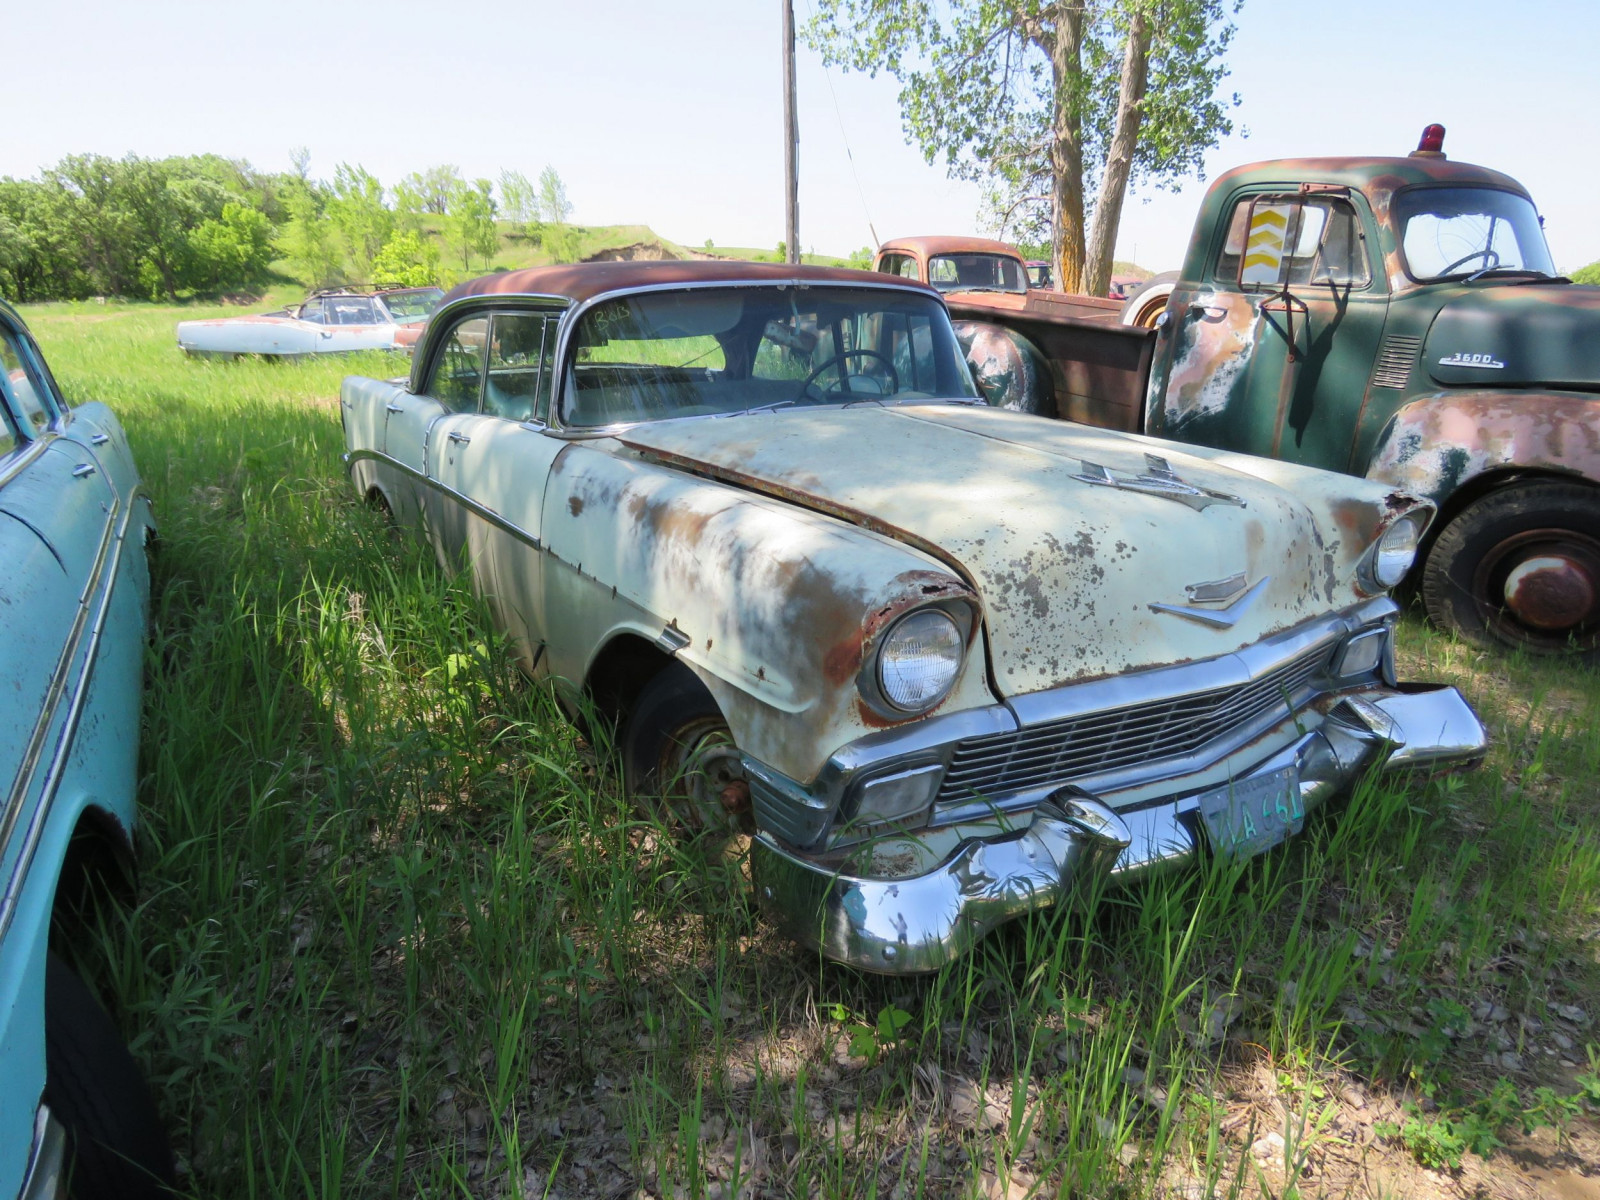 1956 Chevrolet 4dr HT for Project or parts - Image 3